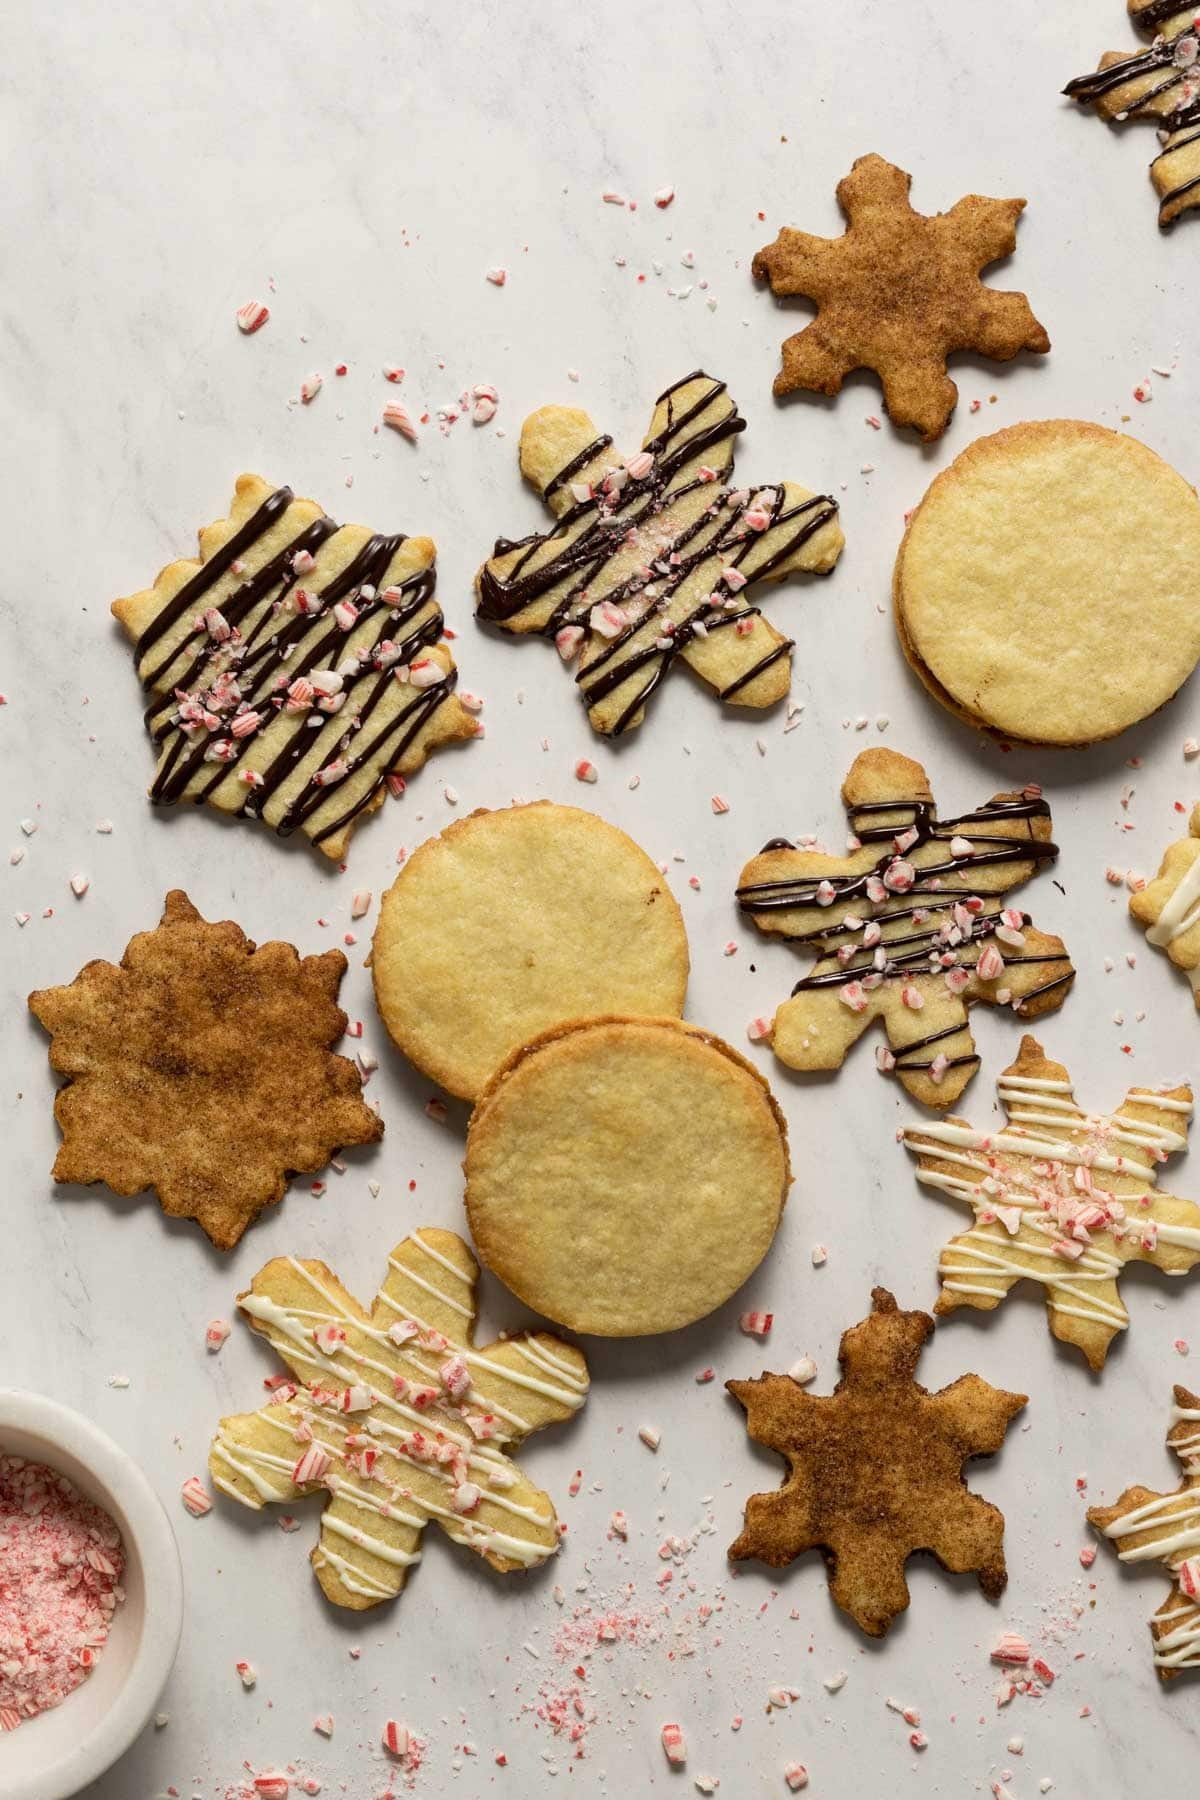 Almond cookies decorated with dark chocolate, chai spice, and white chocolate